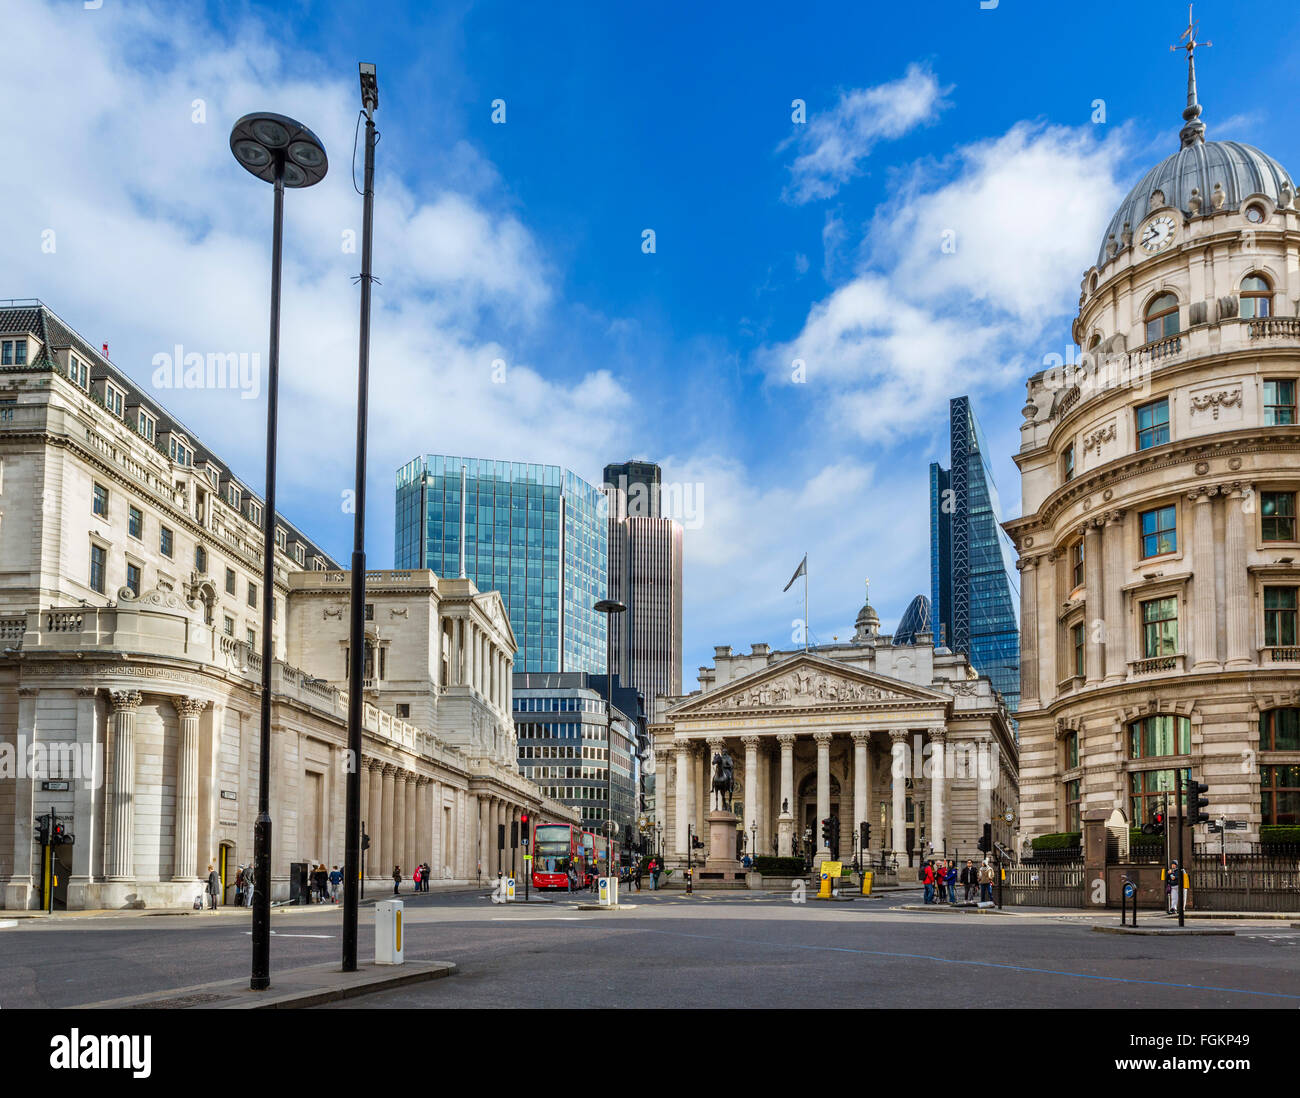 City of London (financial district) from Mansion House St with Bank of England (left) and Royal Exchange (centre), - Stock Image